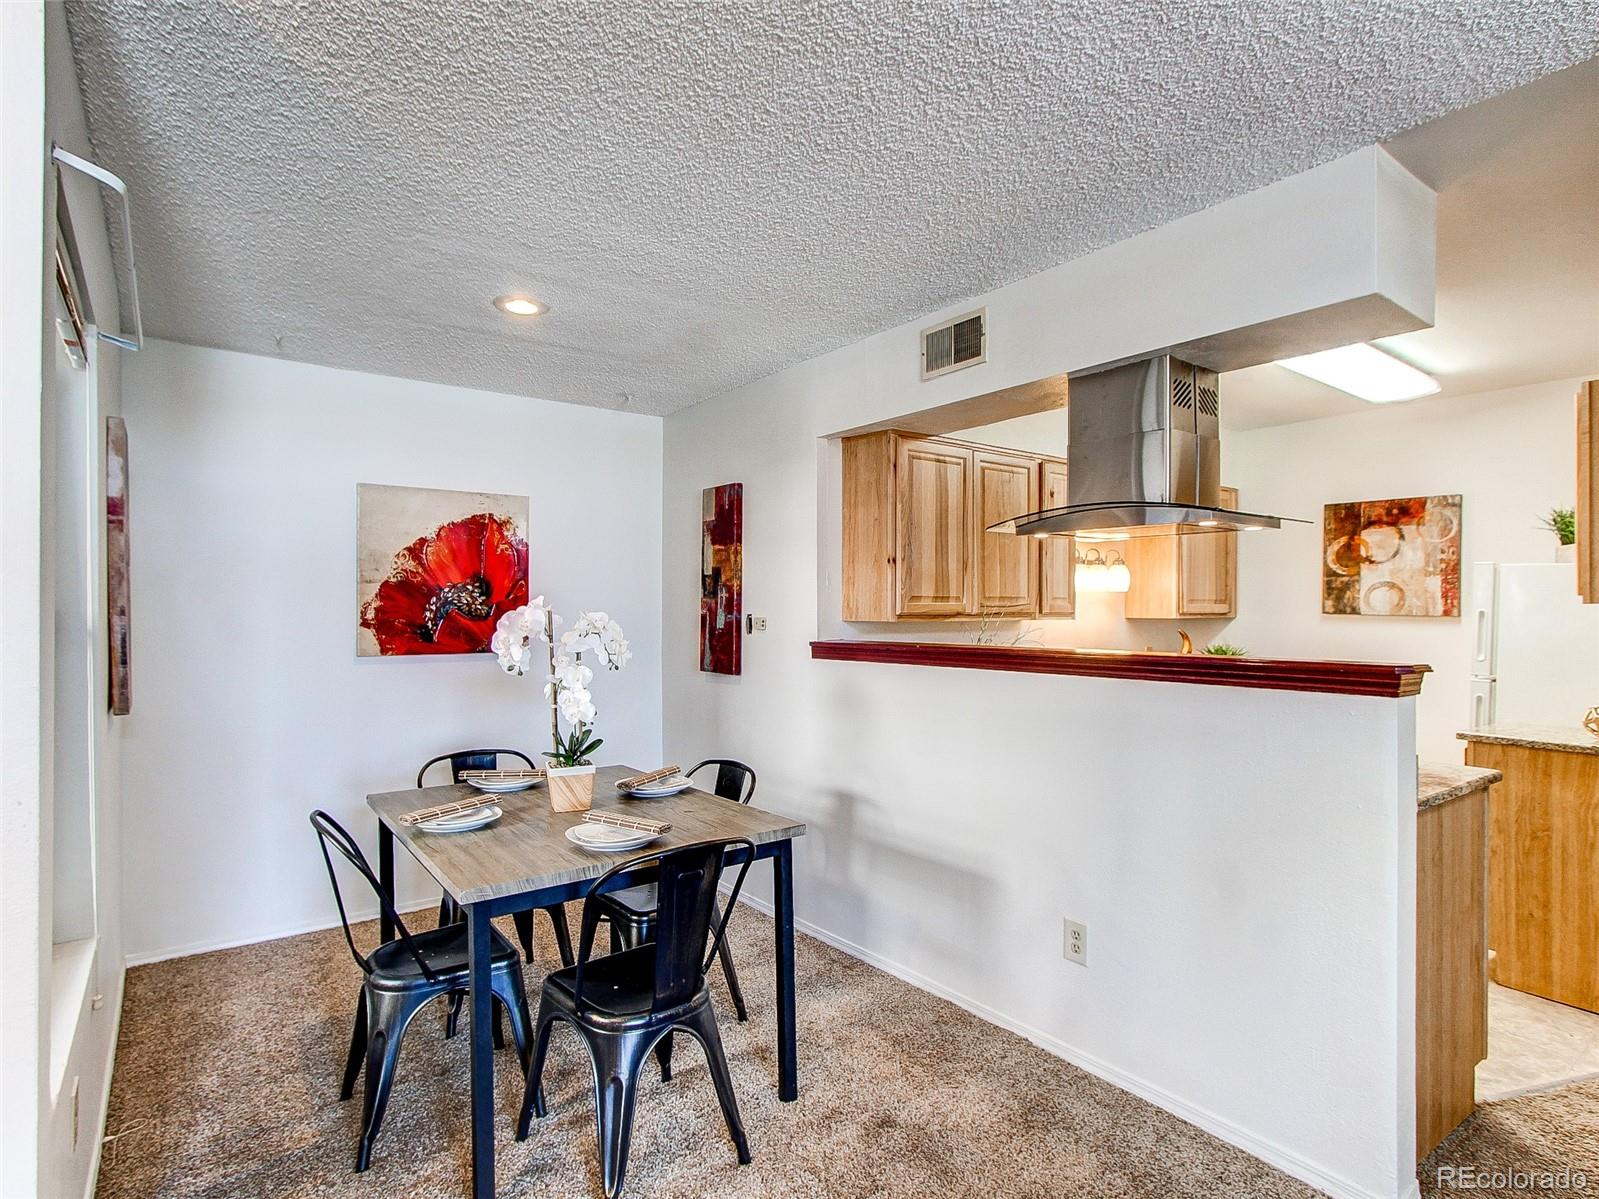 MLS# 7299791 - 5 - 1845 Kendall Street #207C, Lakewood, CO 80214